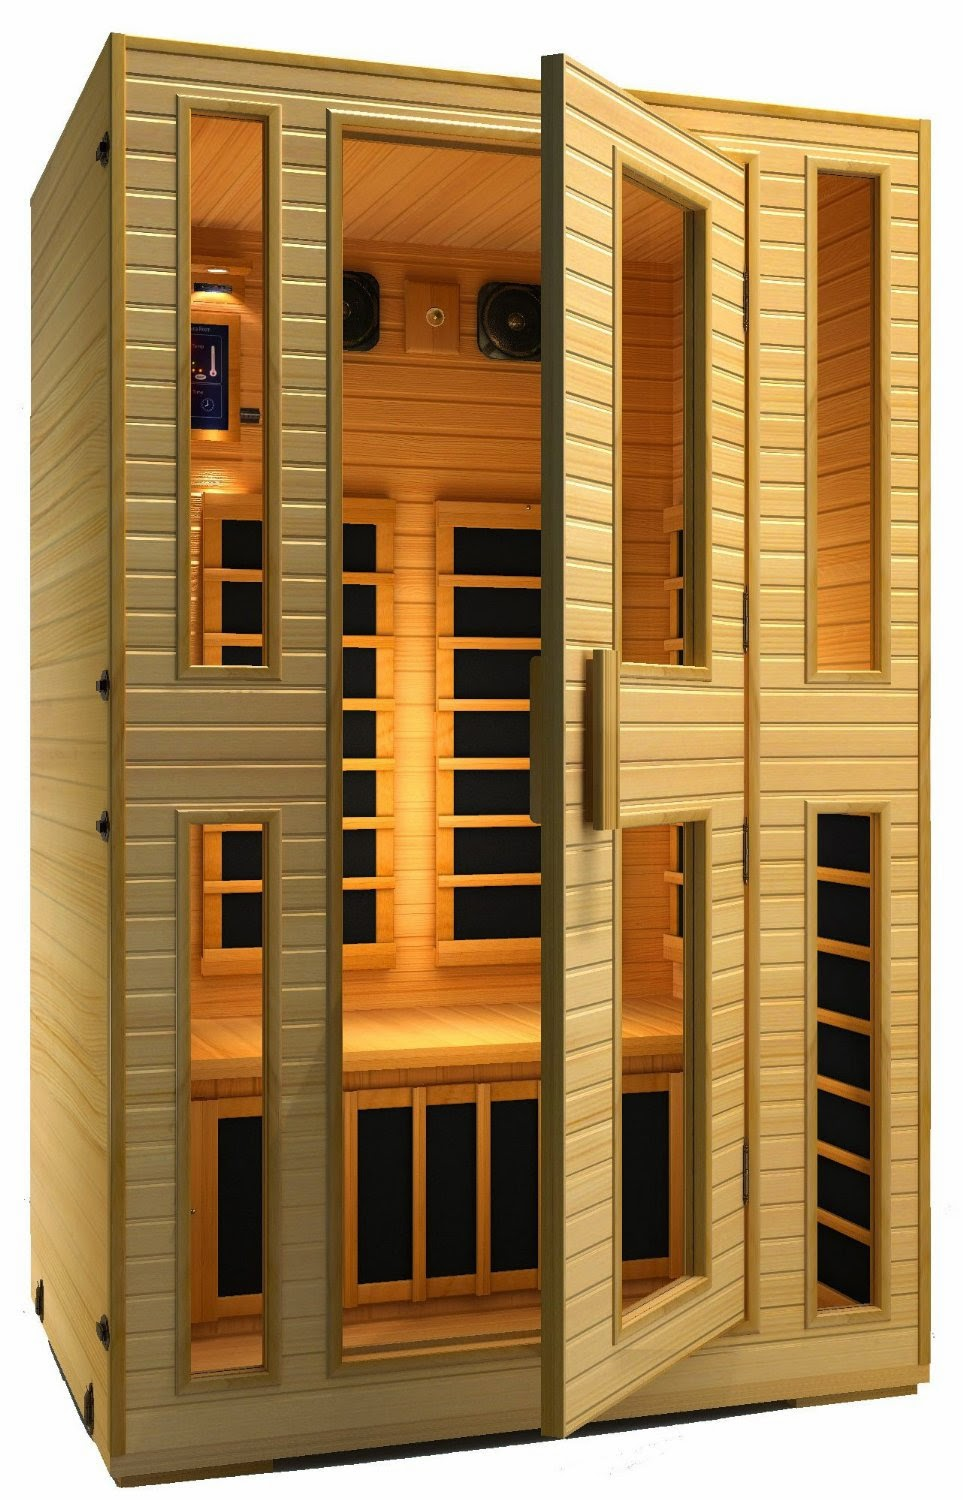 JNH LifeStyles 2 Person Far Infrared Sauna 7 Carbon Fiber Heaters, health benefits of saunas